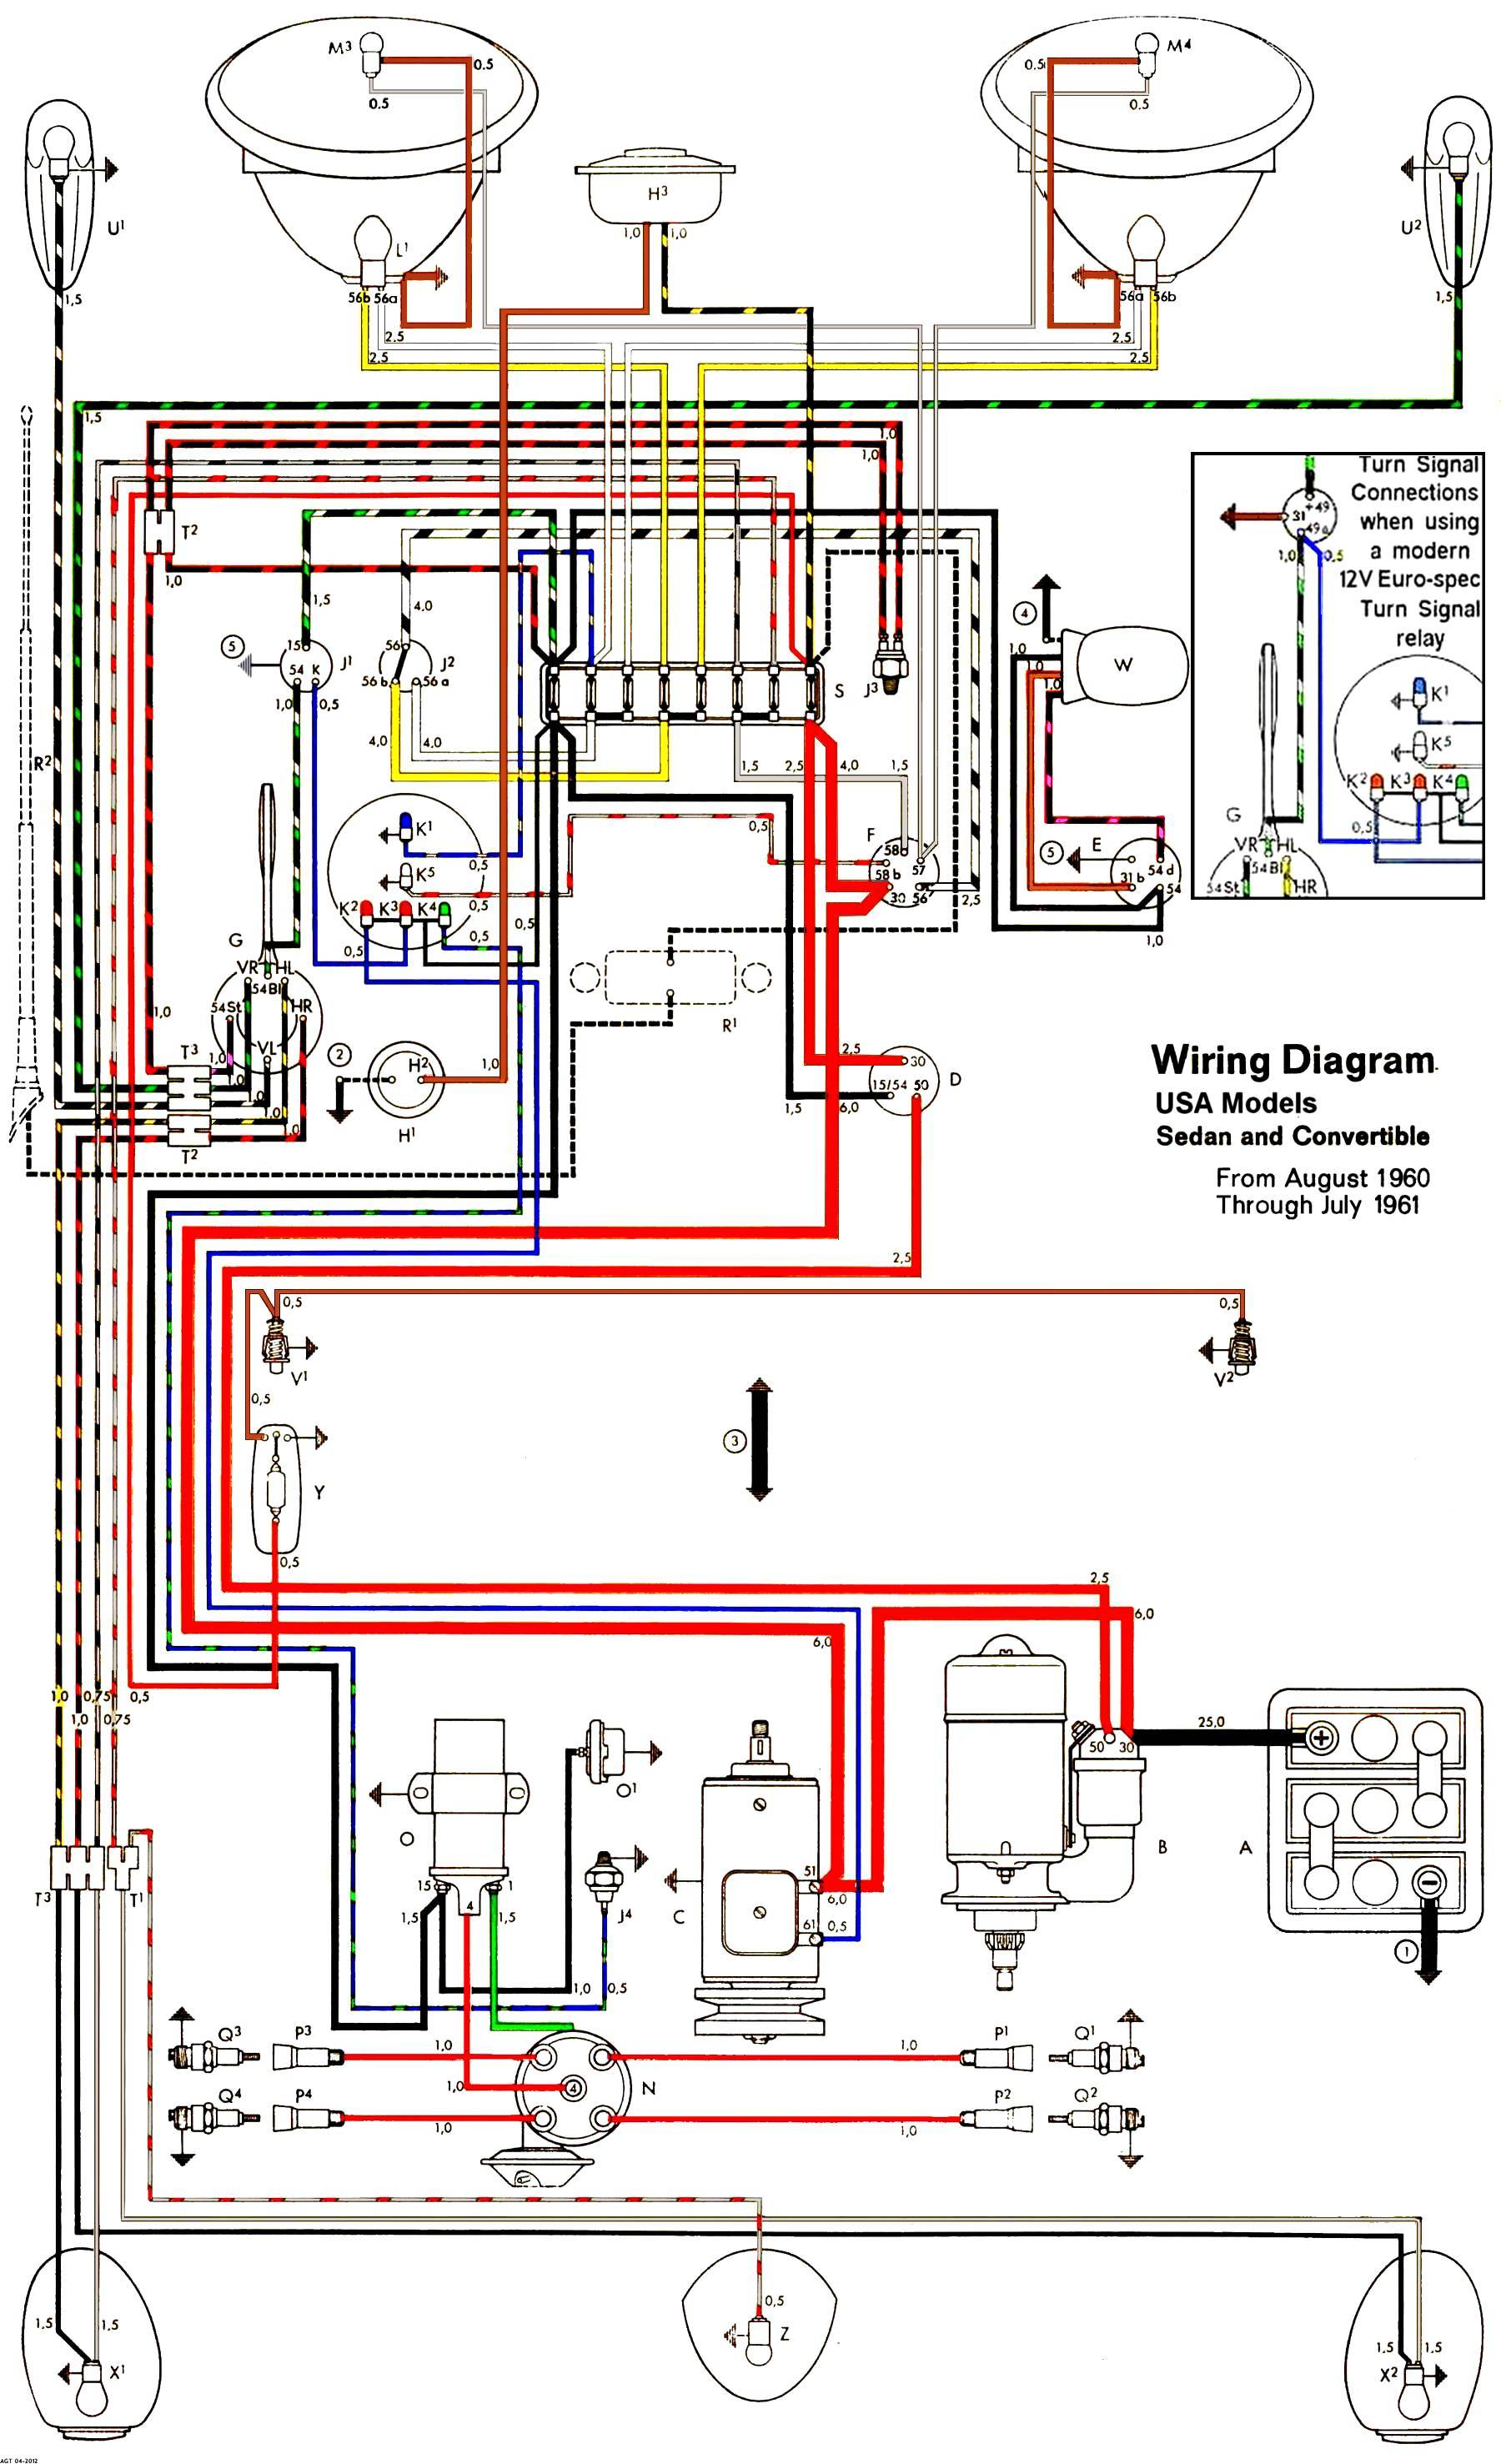 1987 Ford Alternator Wiring Diagram Volkswagen Harness Content Resource Of 69 Vw Generator Schematics Diagrams U2022 Rh Parntesis Co